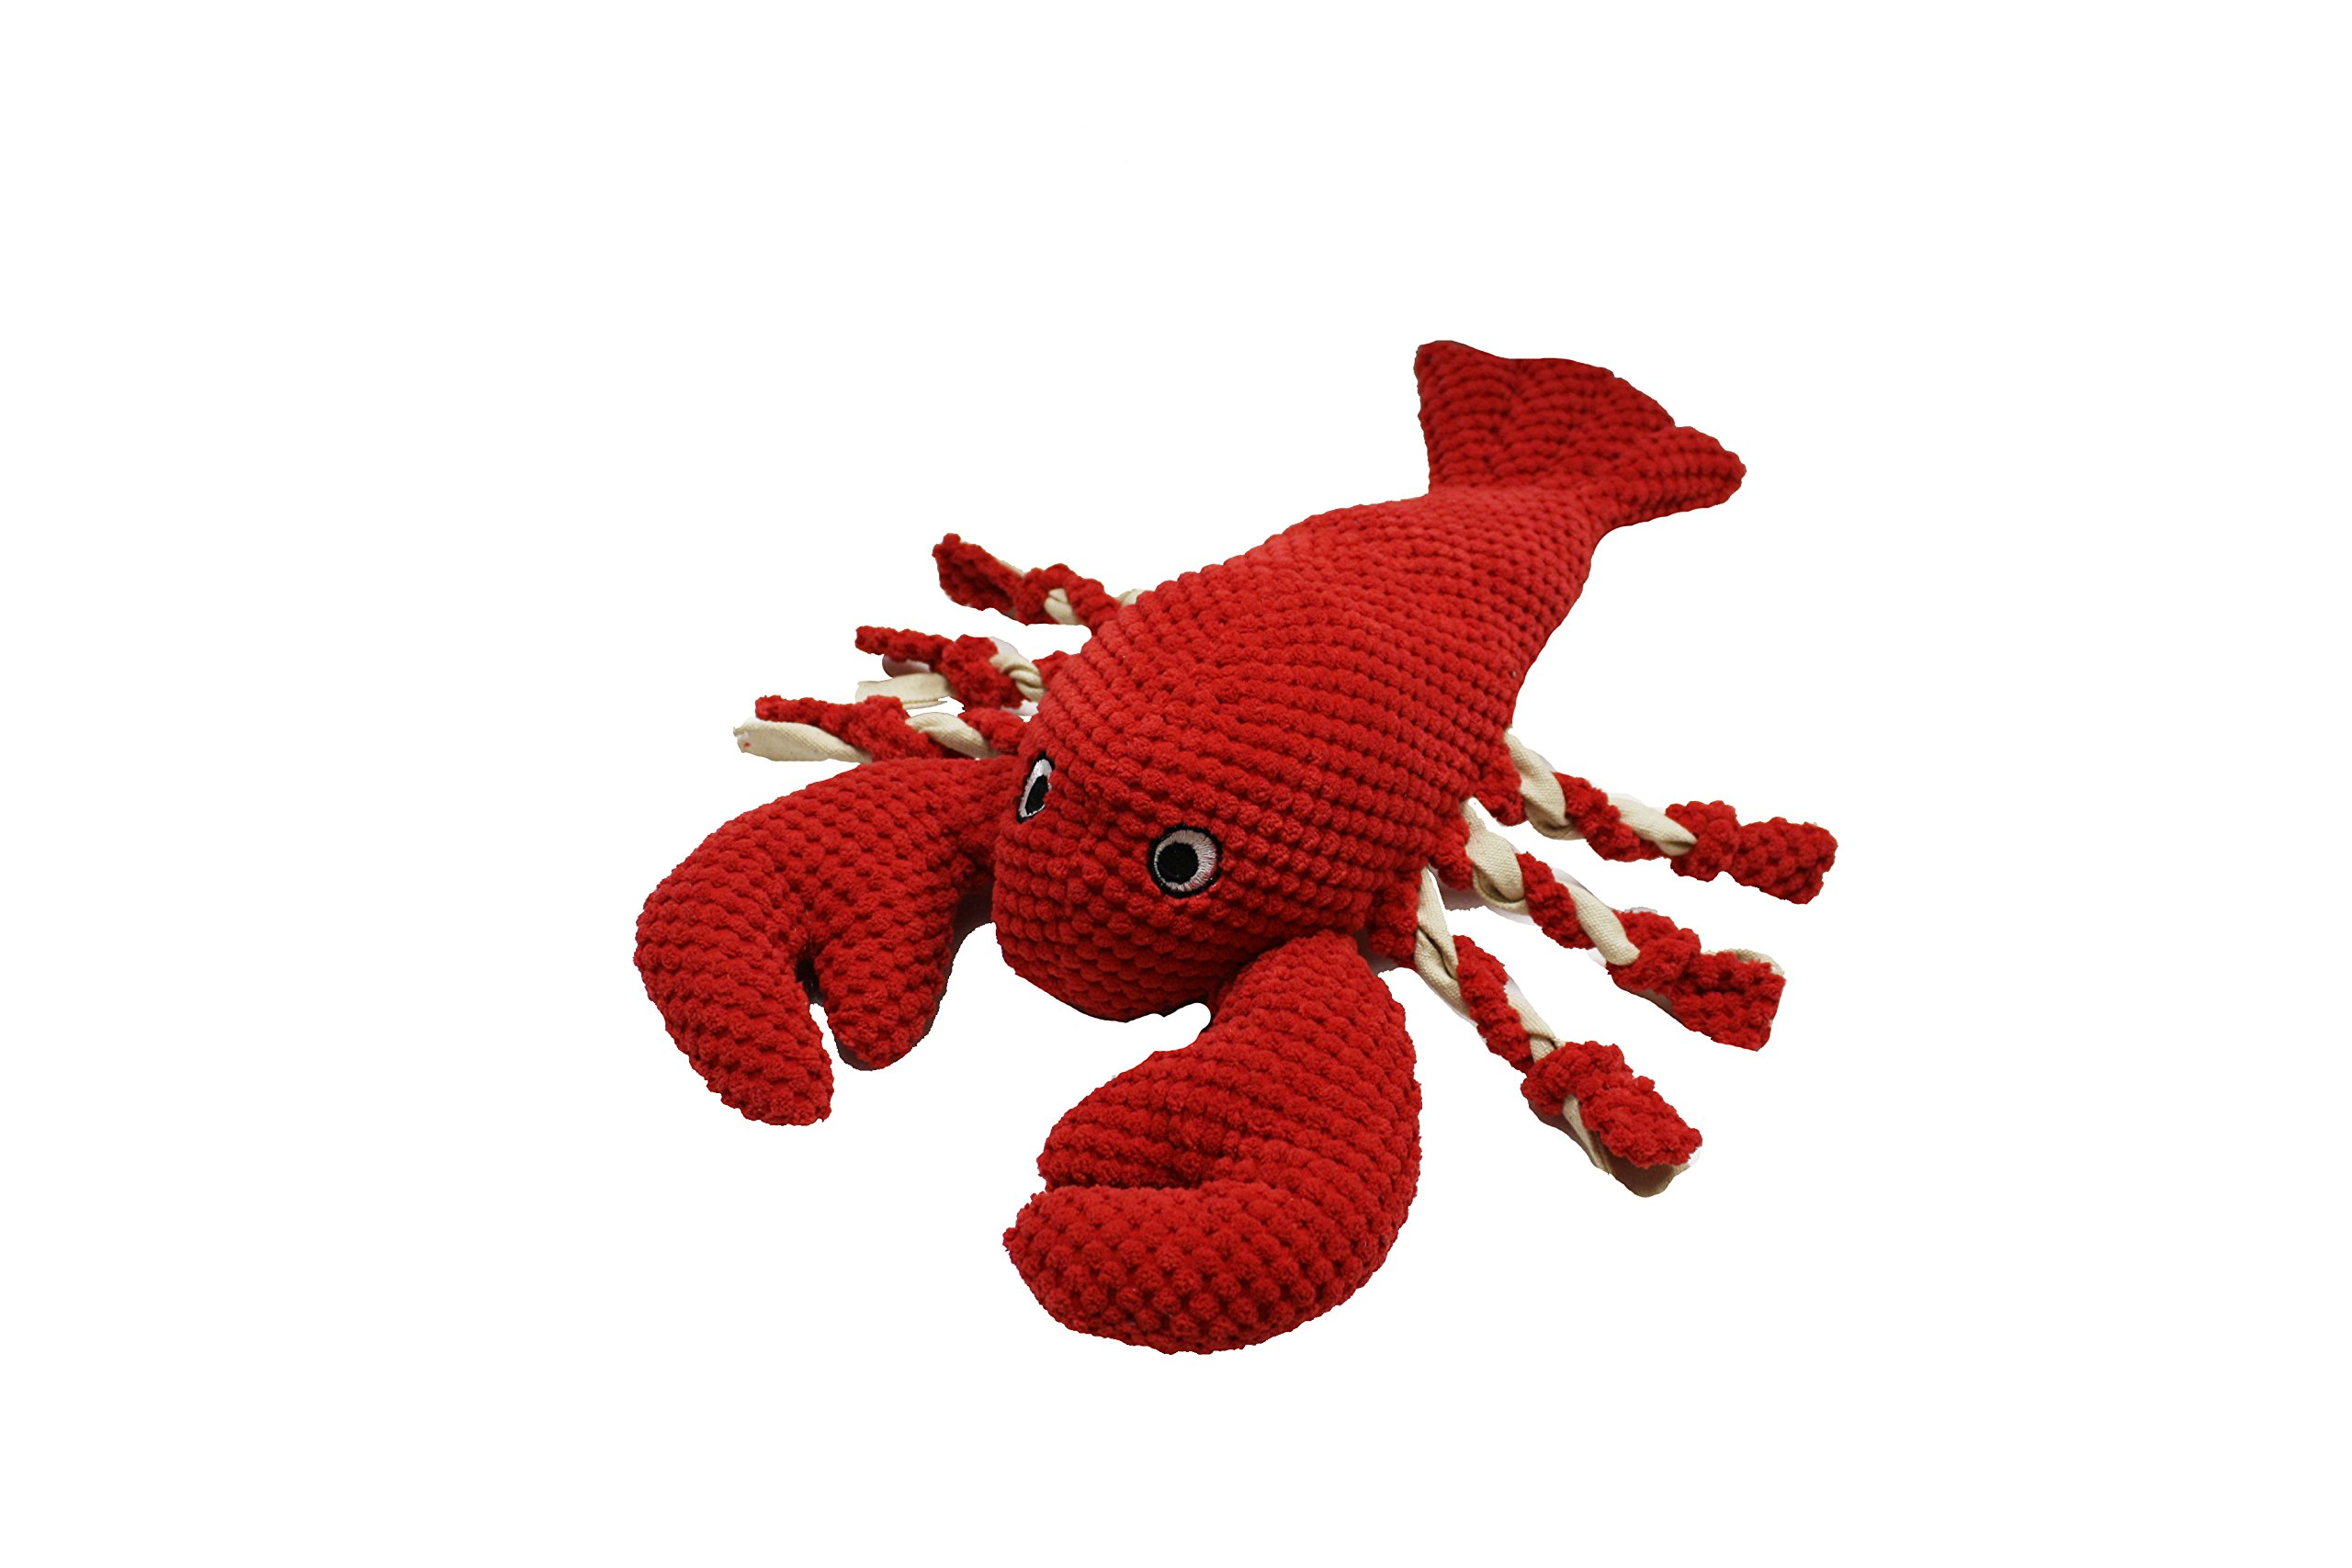 Patchwork Pet Nautical 15-Inch Lobster Dog Chew Toy with Rope Legs